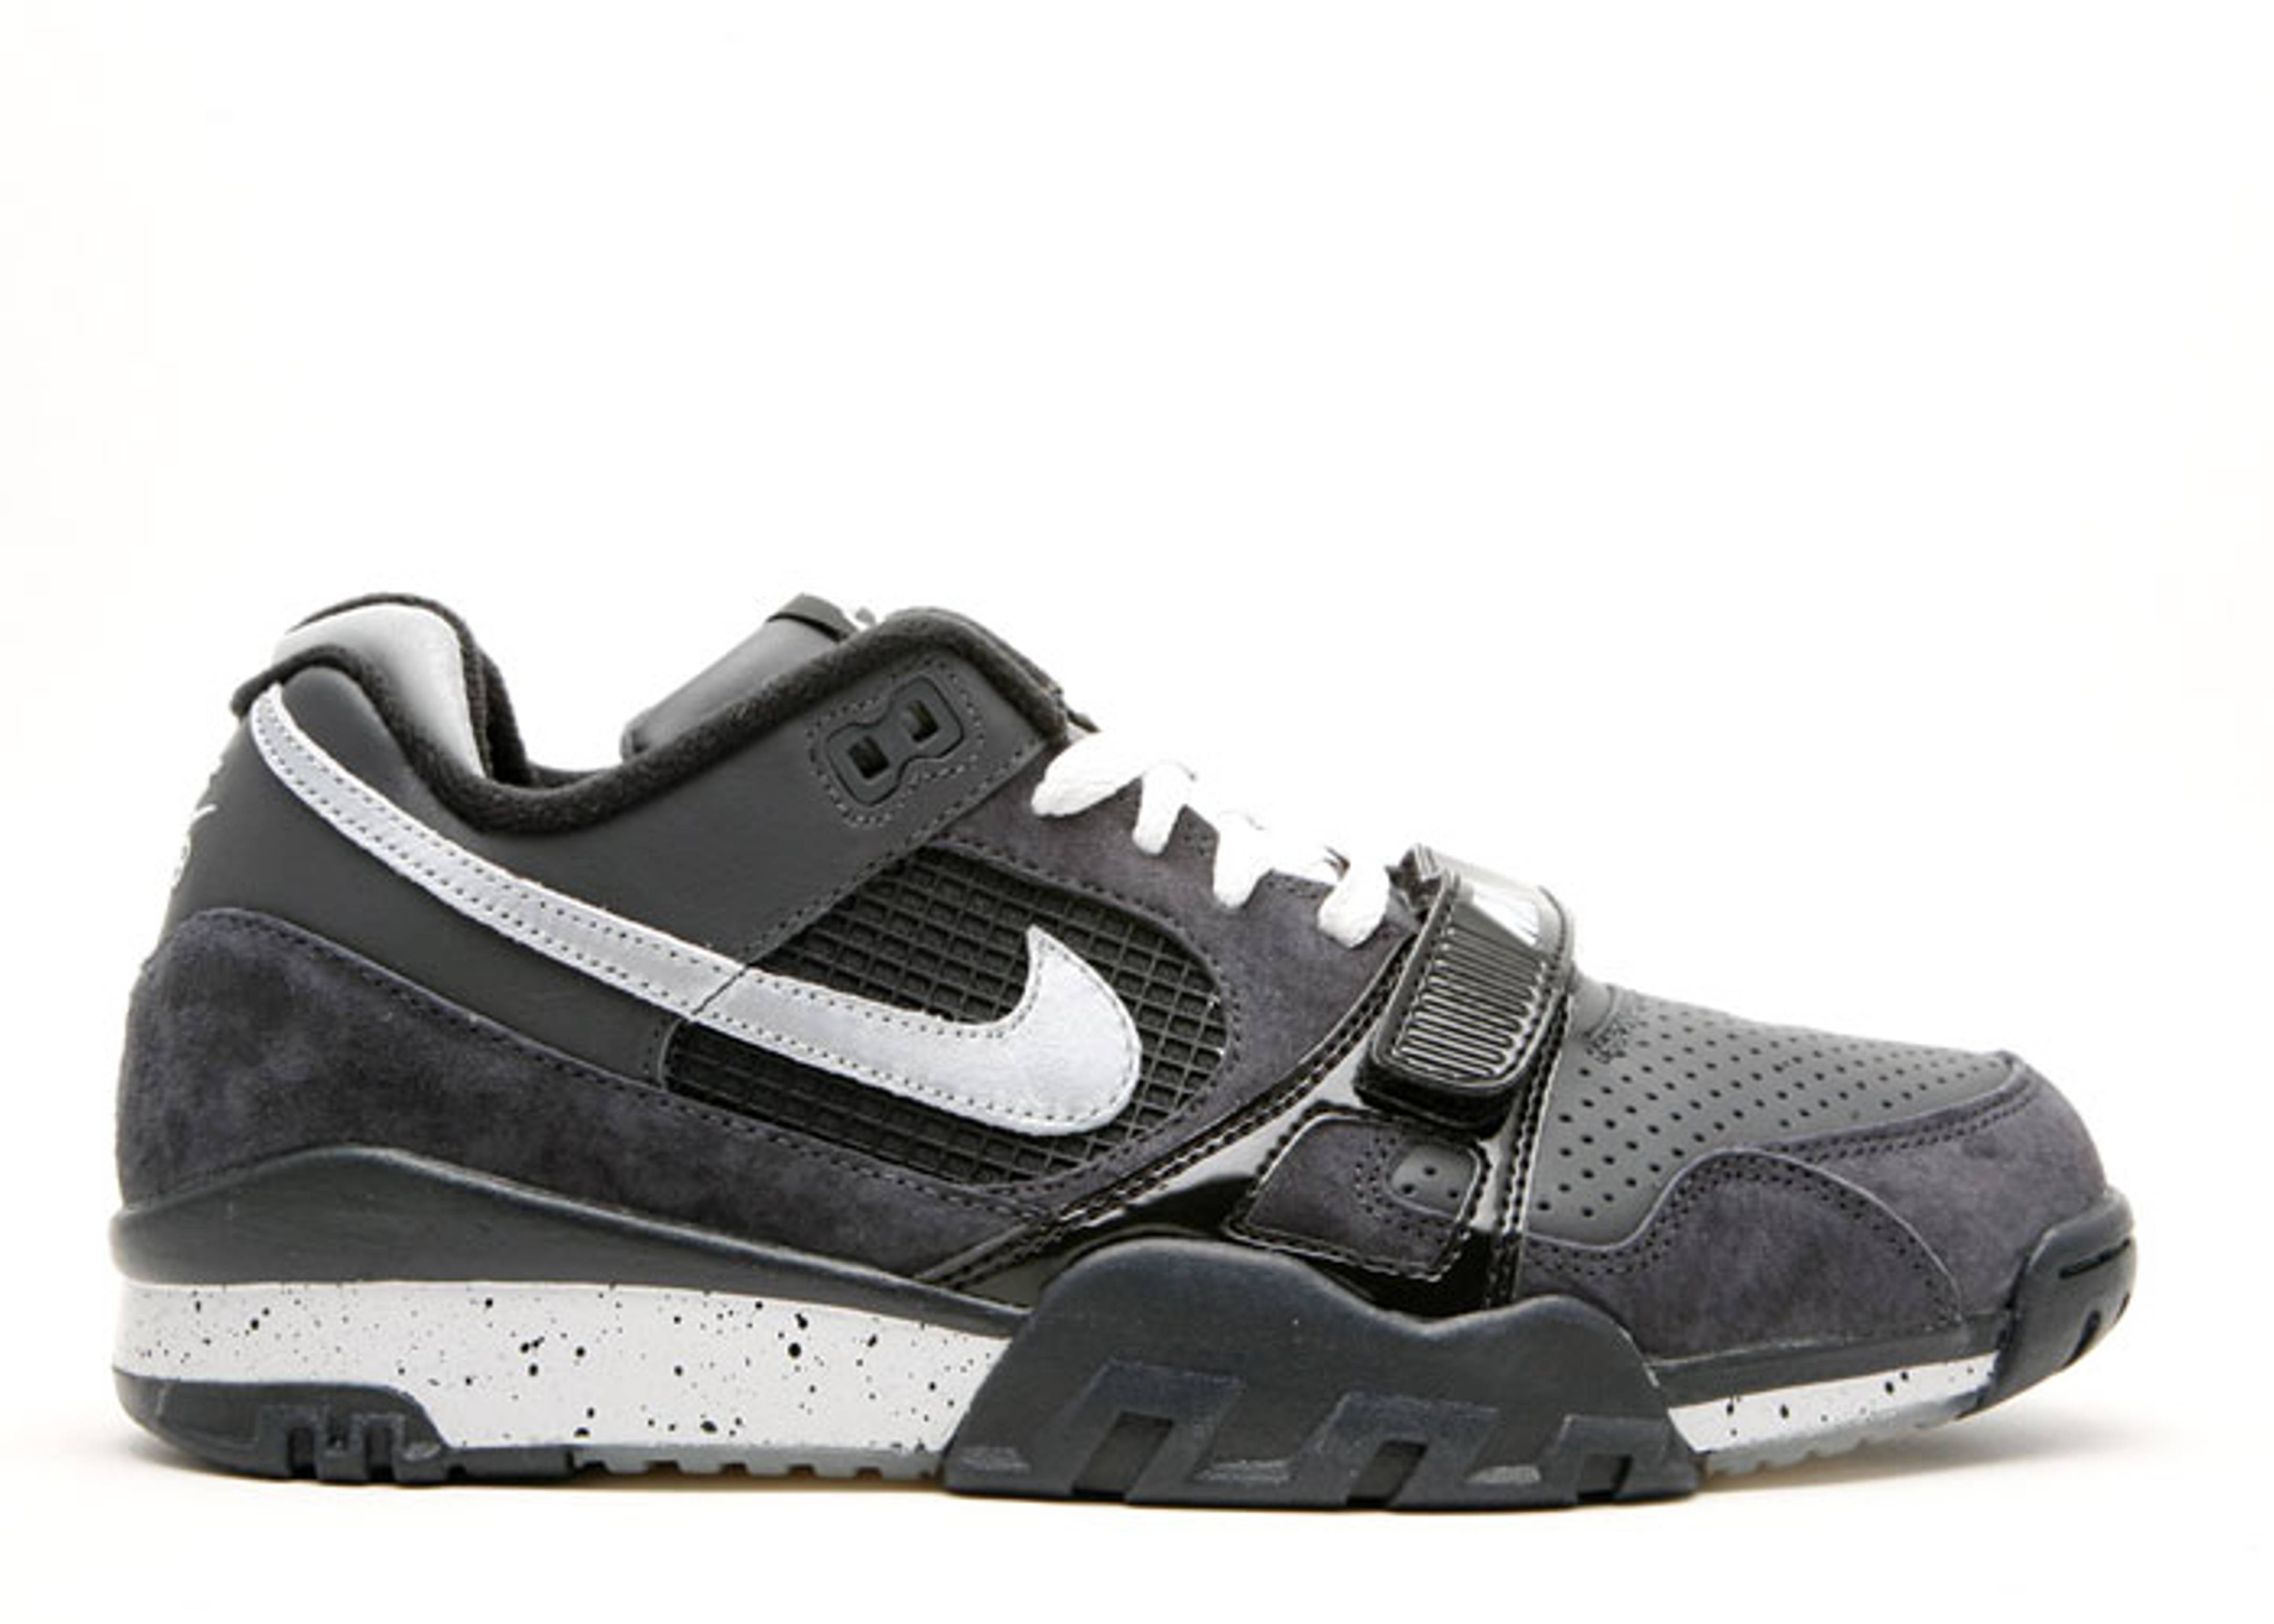 b76cc6d8558850 nike air trainer 2 ii sb anthracite reflective silver detailed pictures